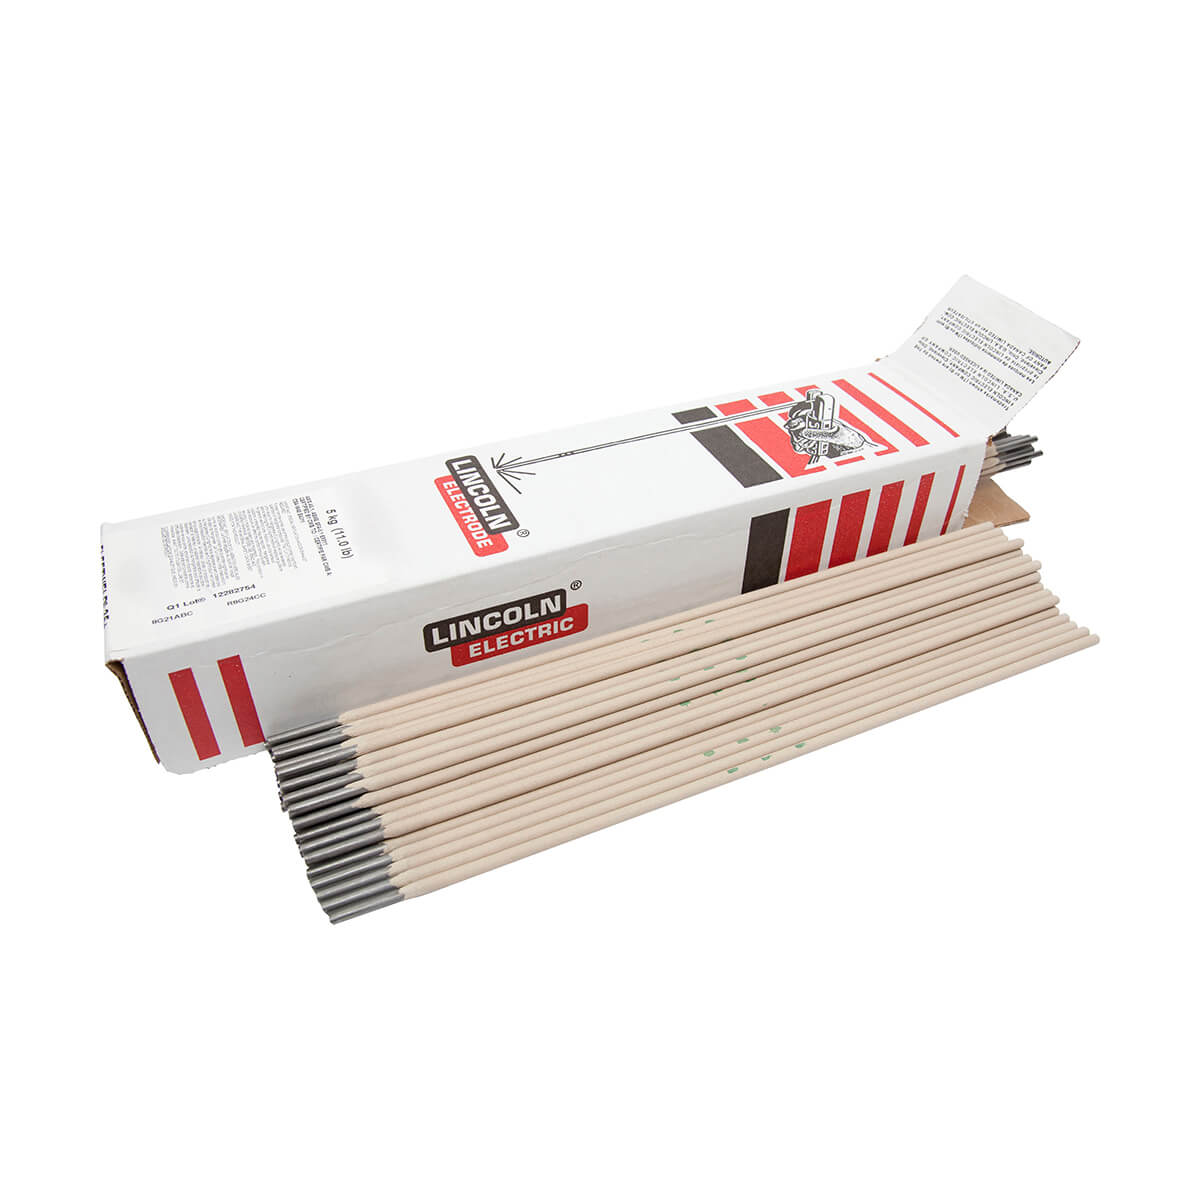 LINCOLN ELECTRIC Fleetweld 5P welding electrodes - 5/32-in x 14-in